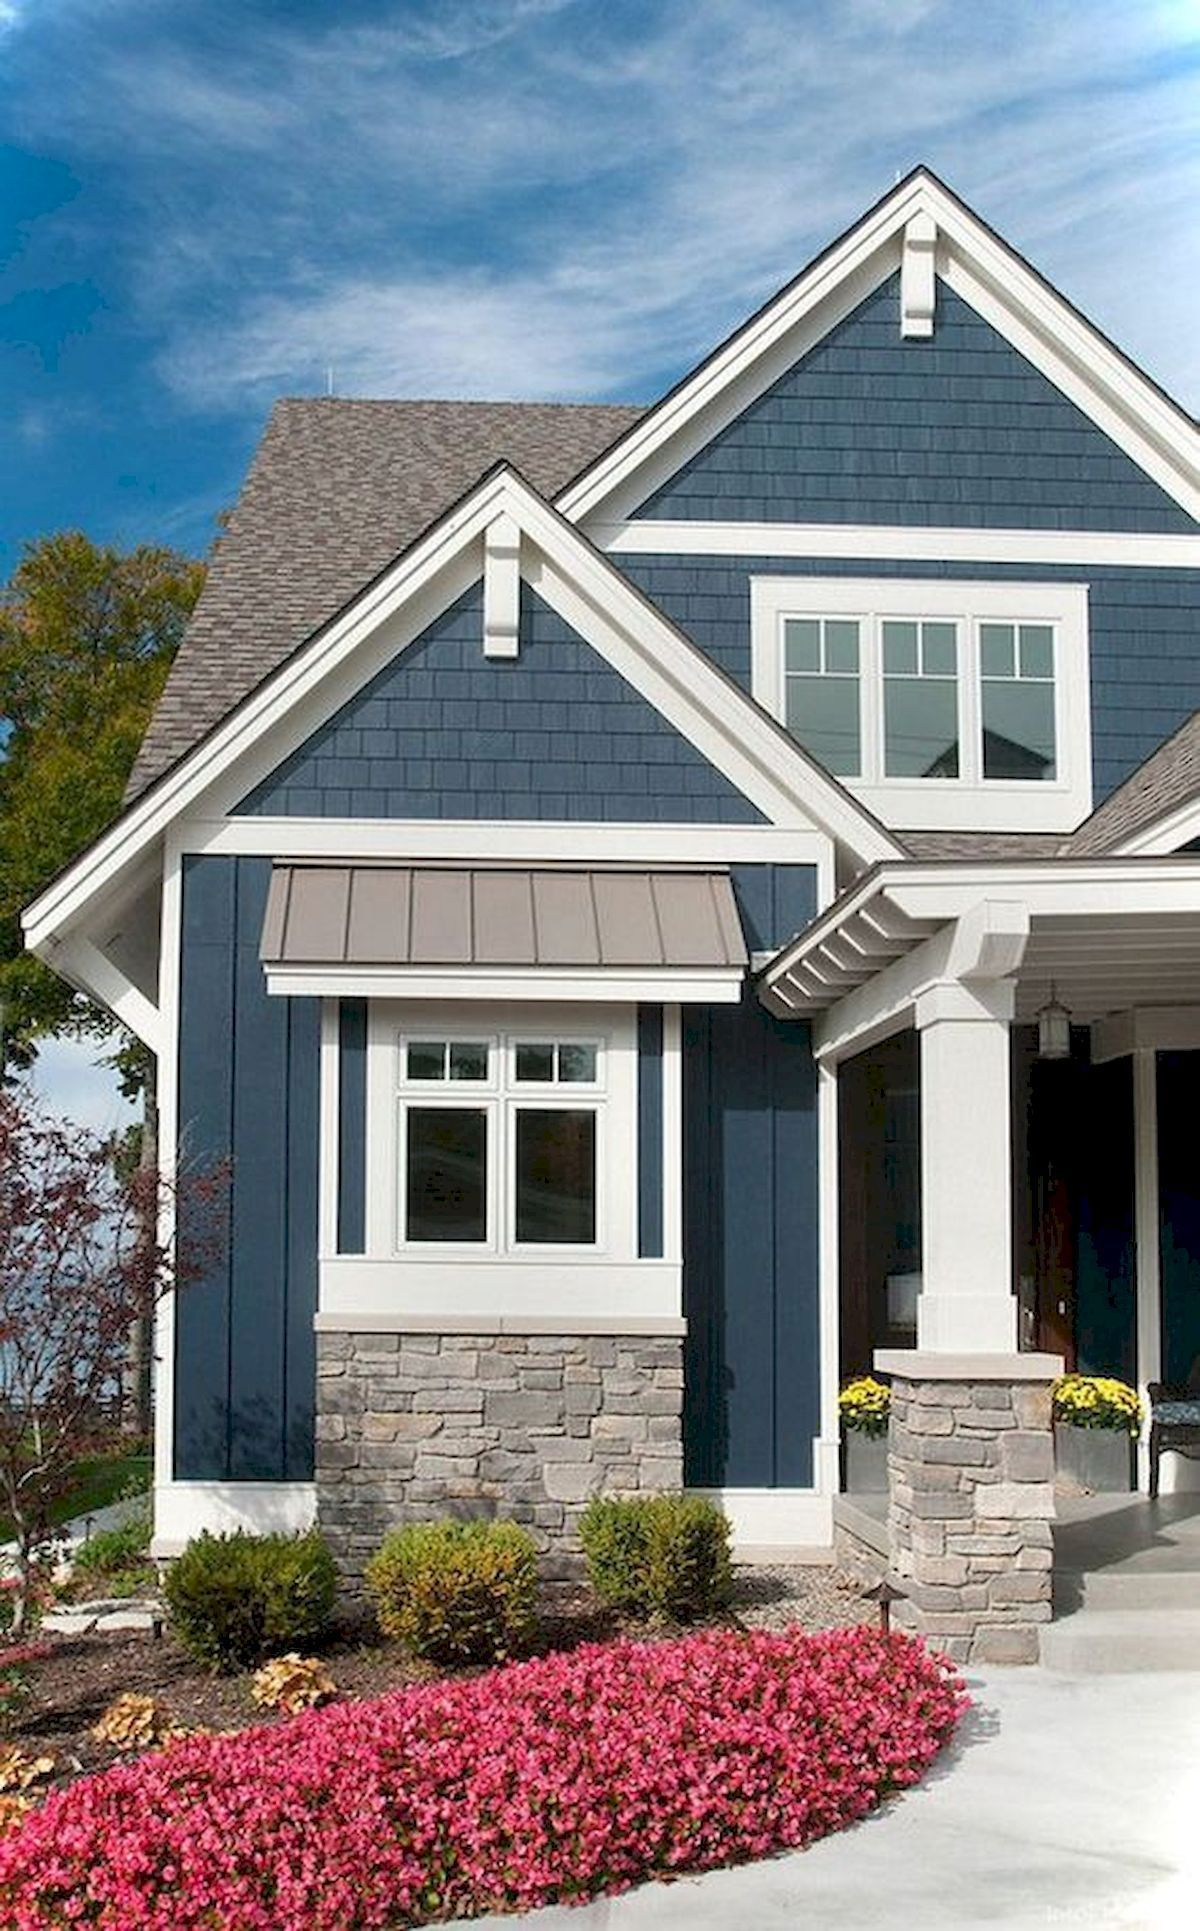 20 best 2019 exterior house trends ideas 2 exterior on popular designer paint colors id=67037